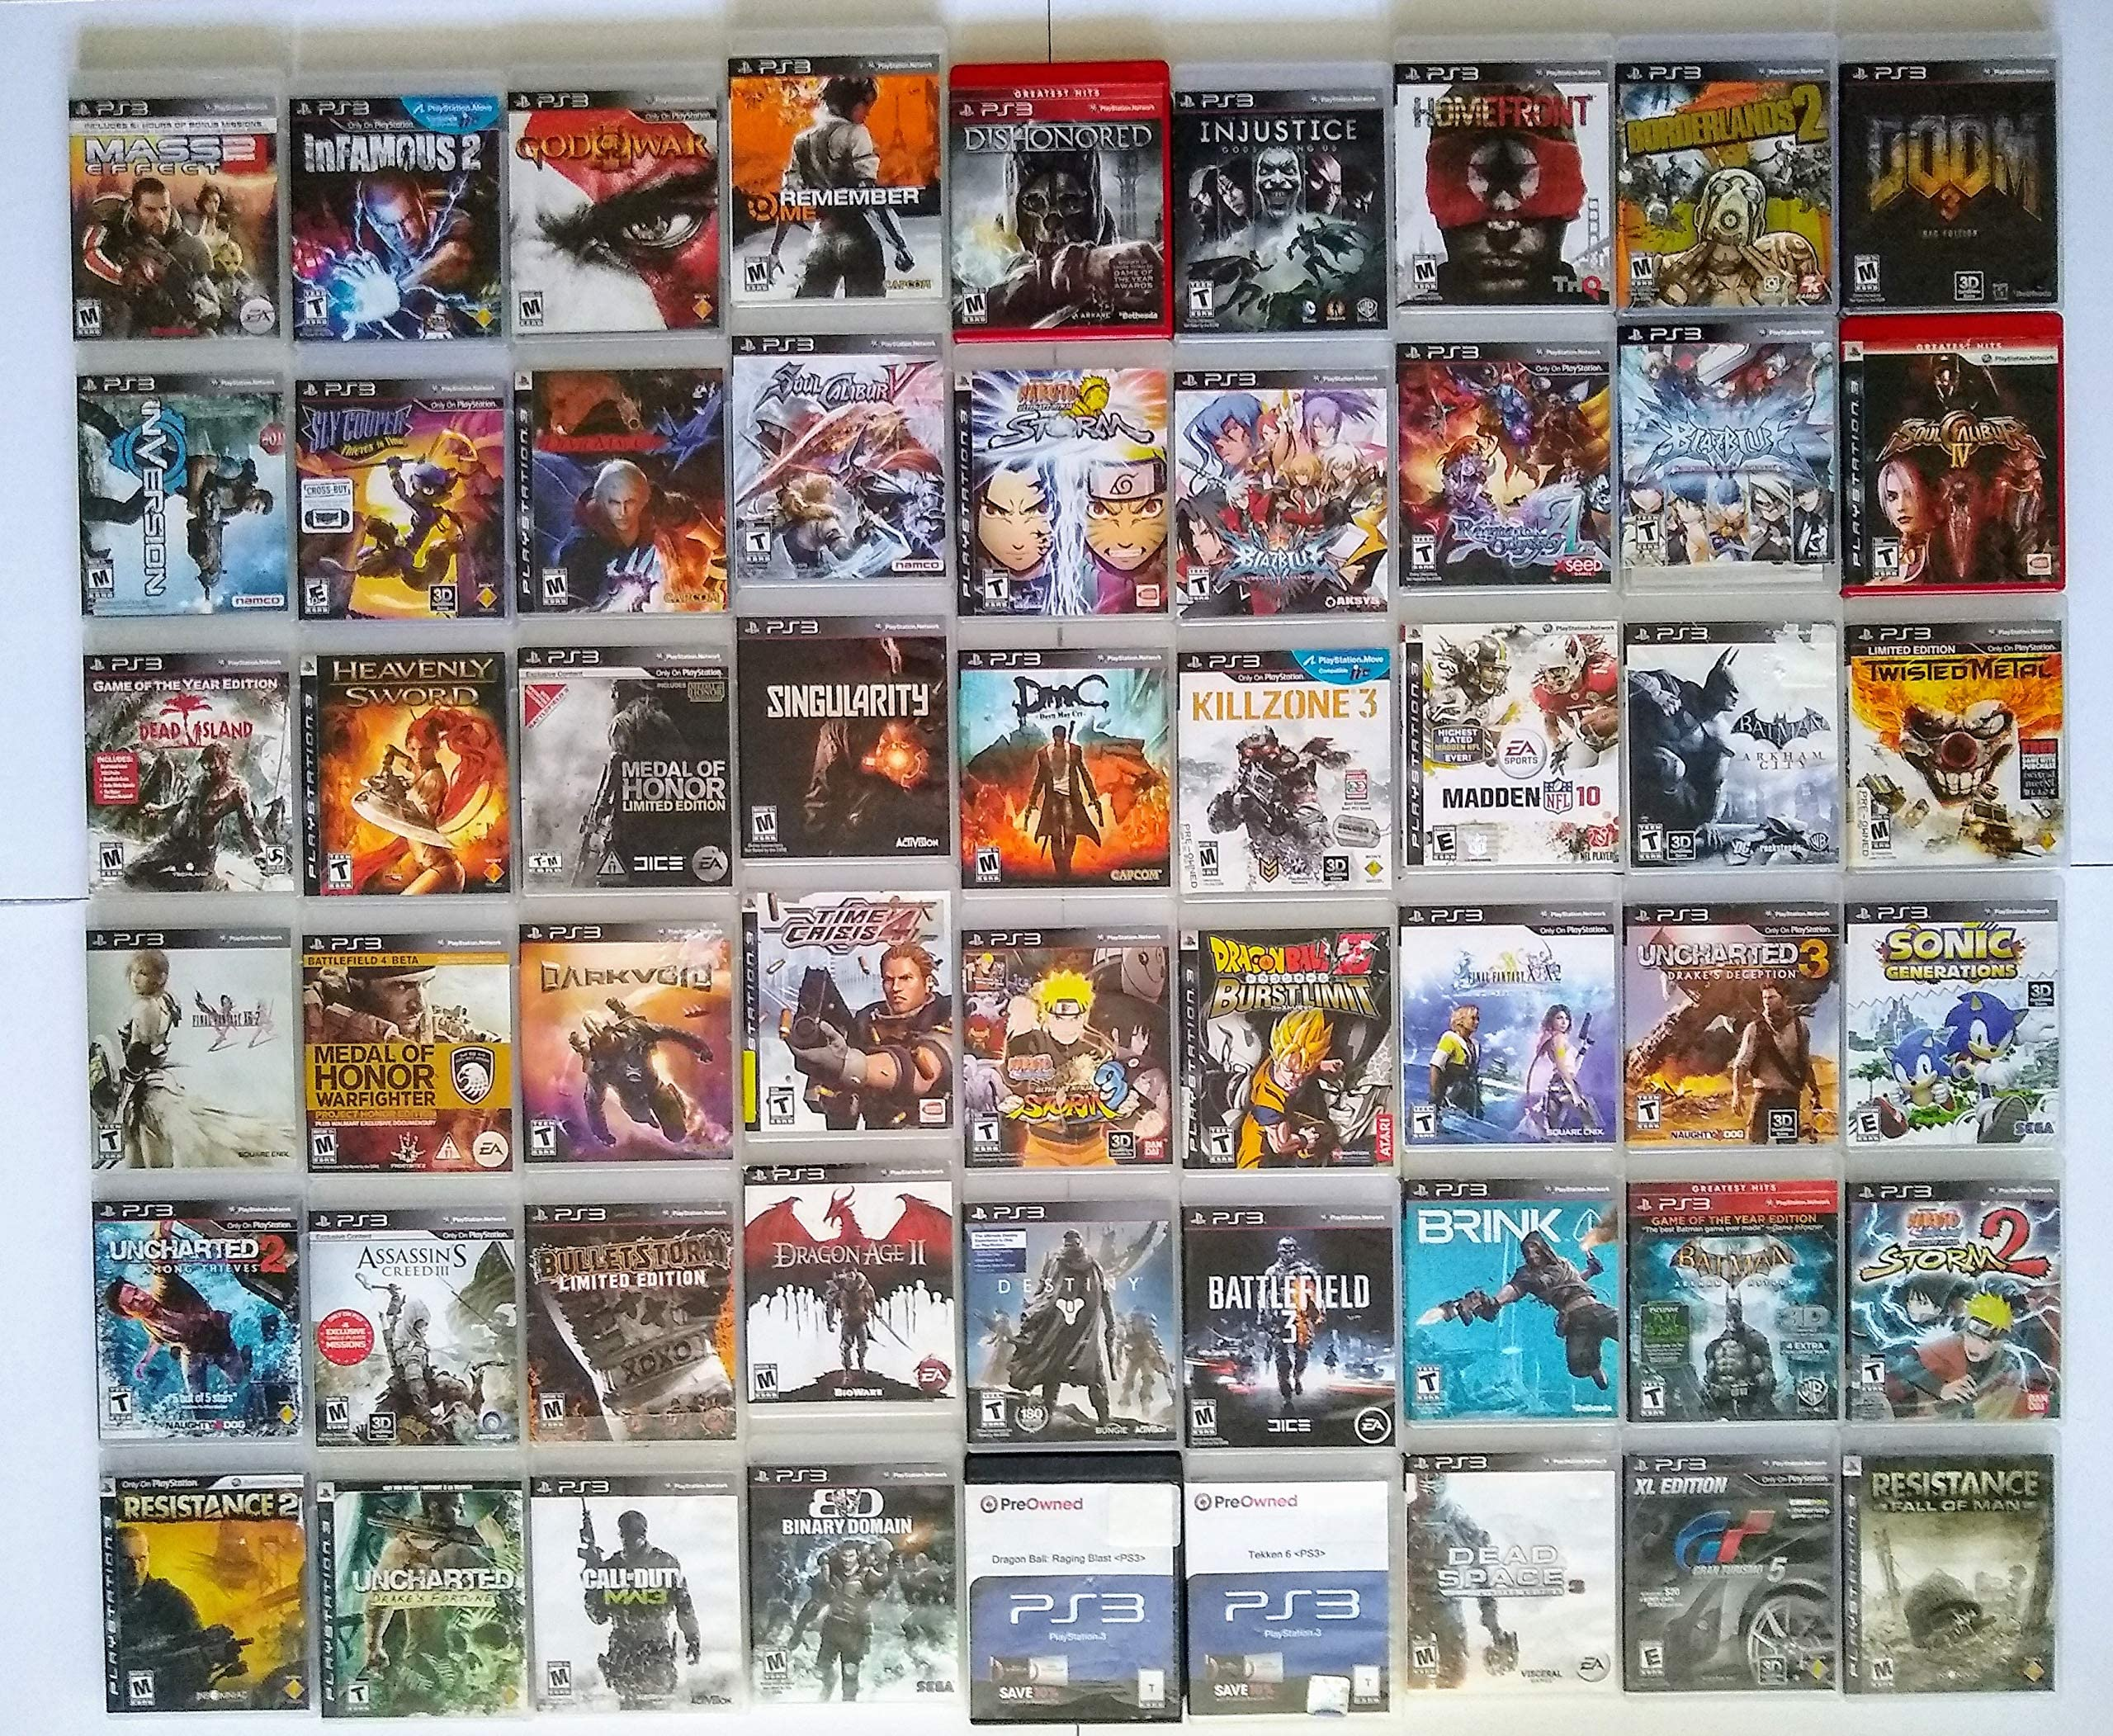 Amazon.com: PS3 games Lot of 54 different games for ...